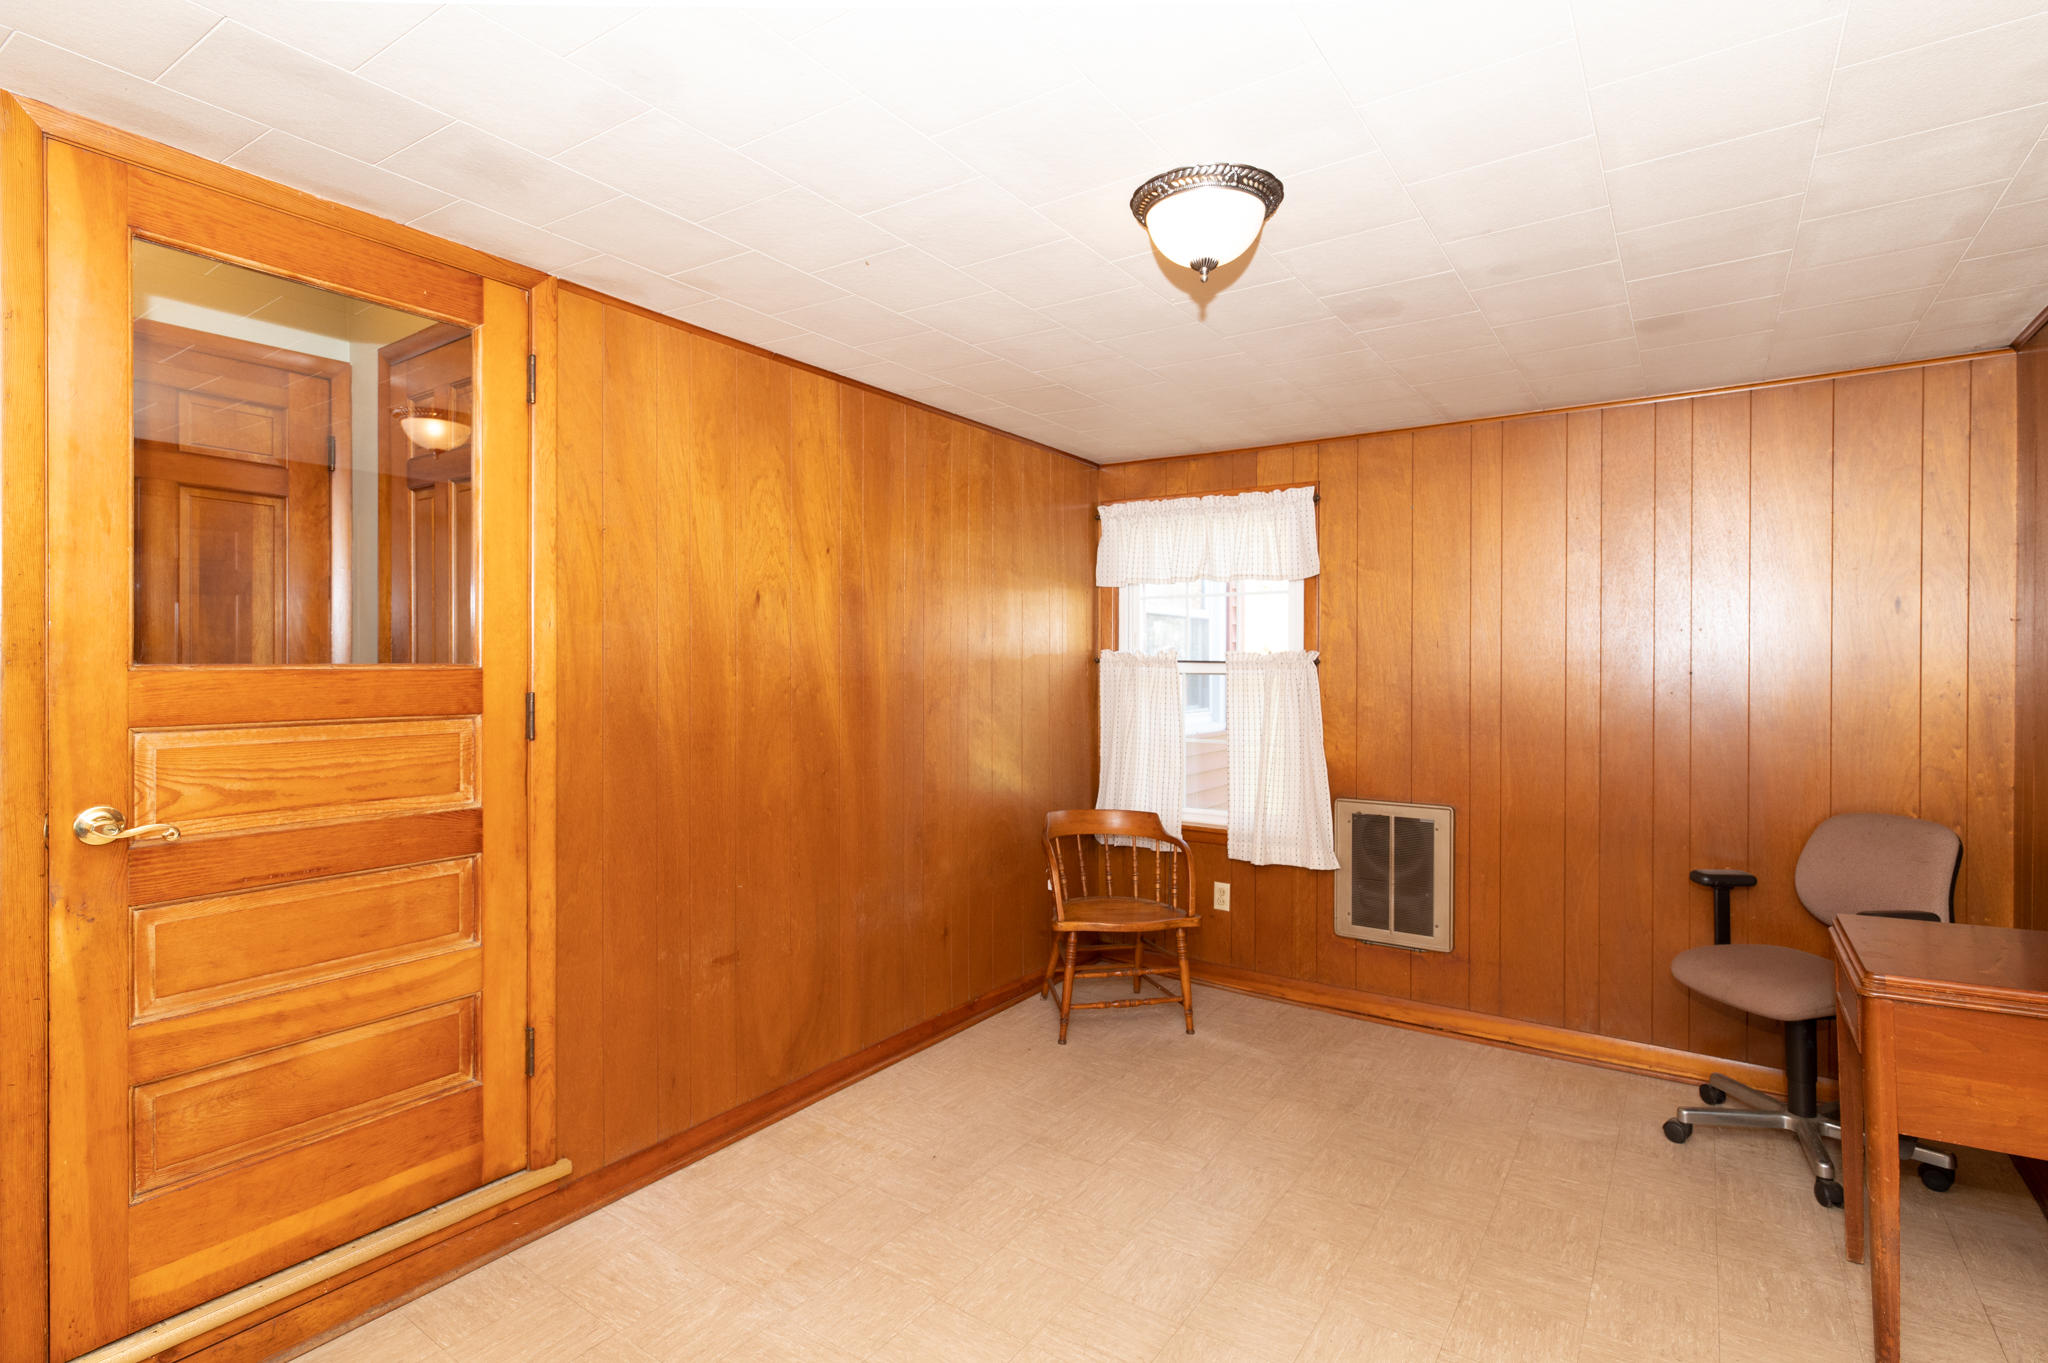 W4624 County Road MM, Lebanon, Wisconsin 53047, 3 Bedrooms Bedrooms, ,2 BathroomsBathrooms,Single-family,For Sale,County Road MM,1714665